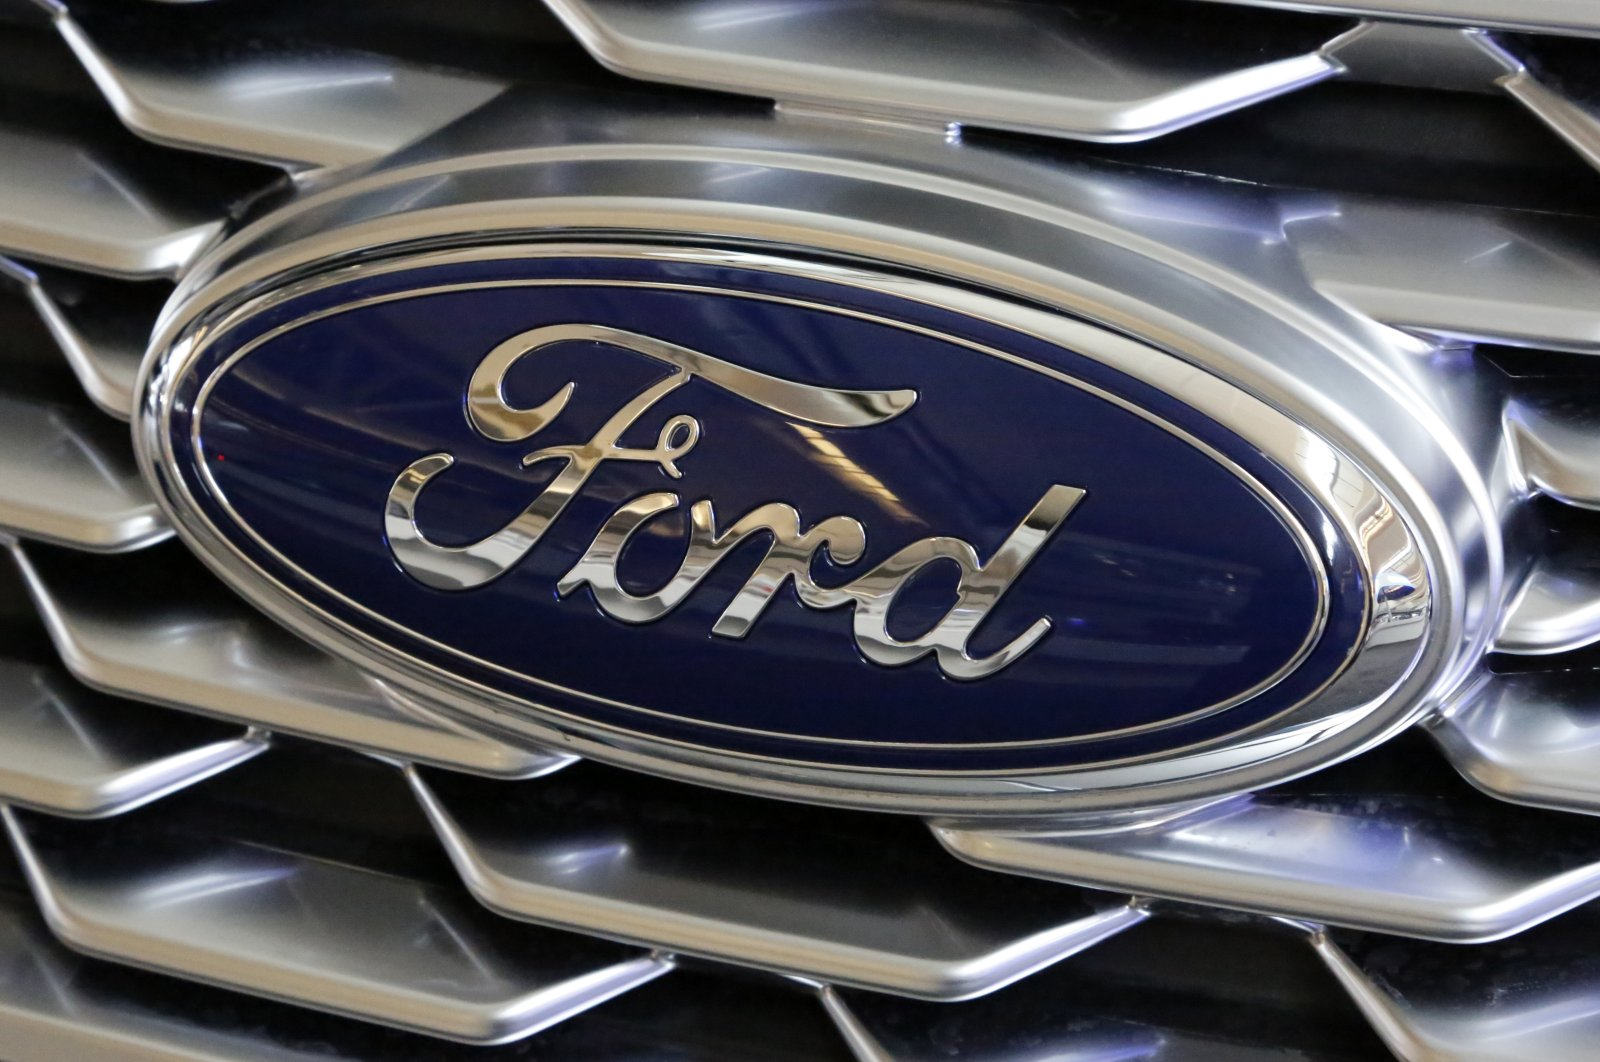 This Feb. 15, 2018, photo shows a Ford logo on display at the Pittsburgh Auto Show in Pittsburgh. (AP Photo)